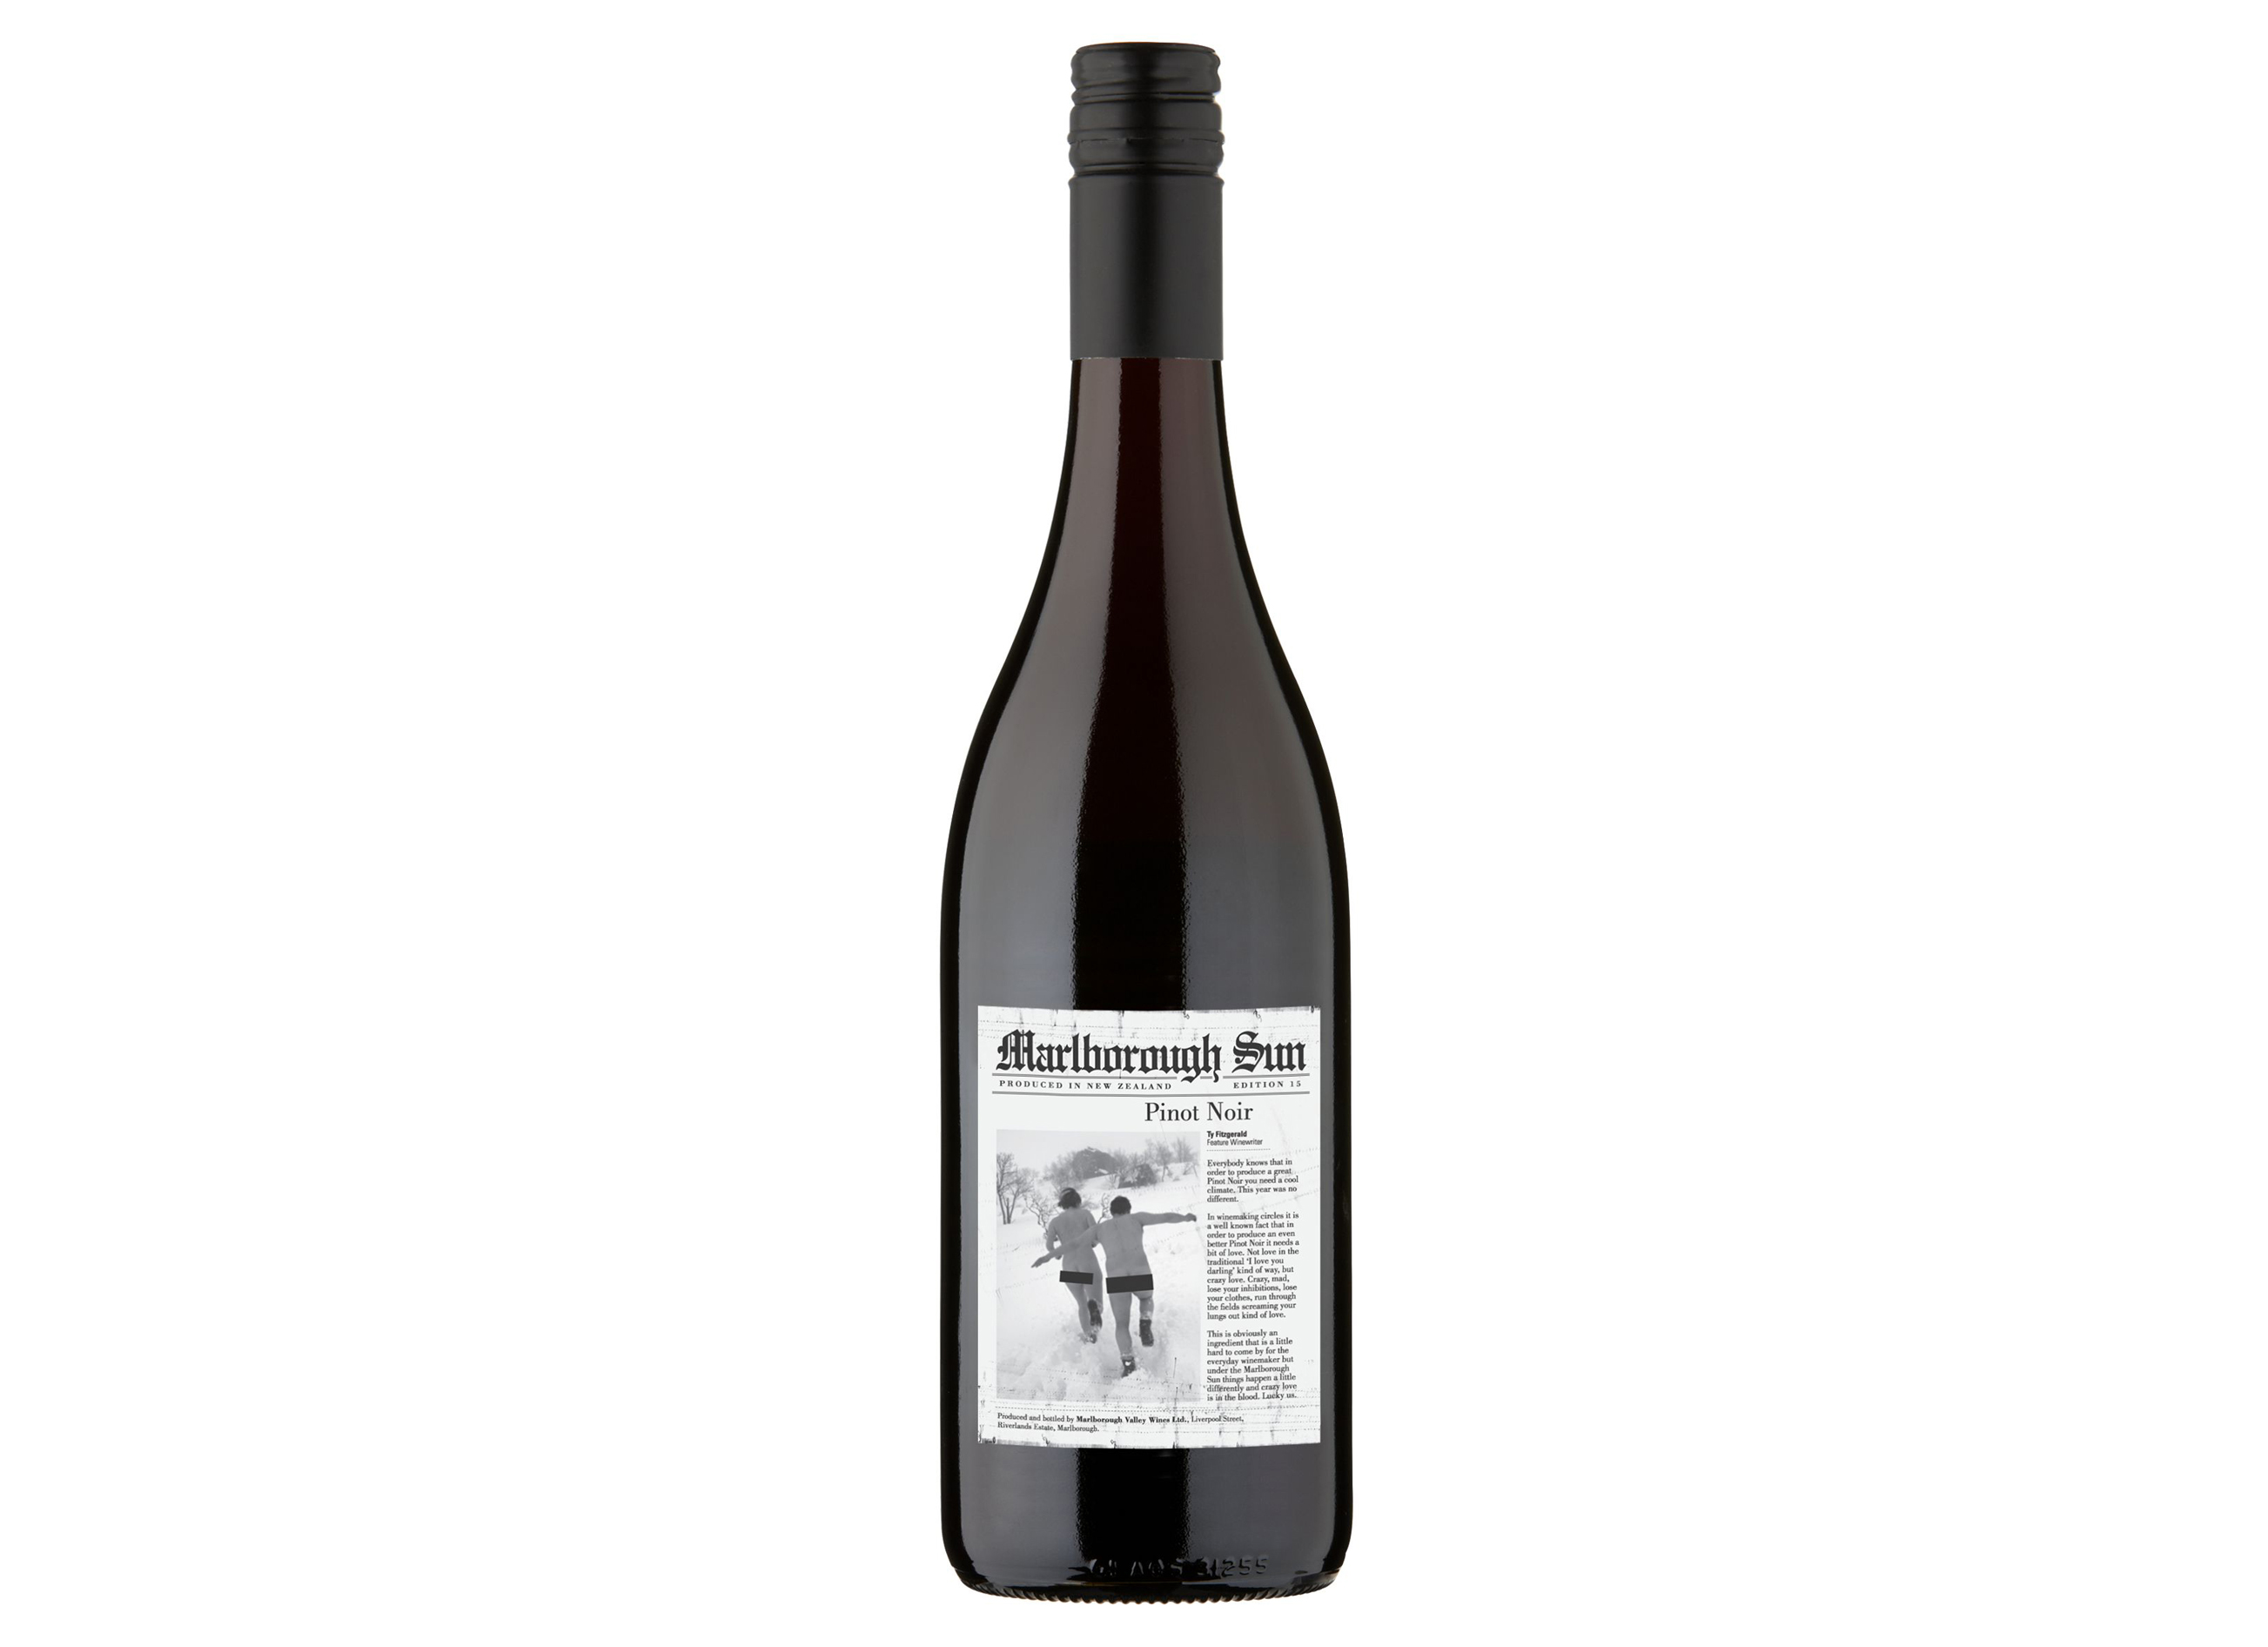 Marlborough Sun Pinot Noir, NZ